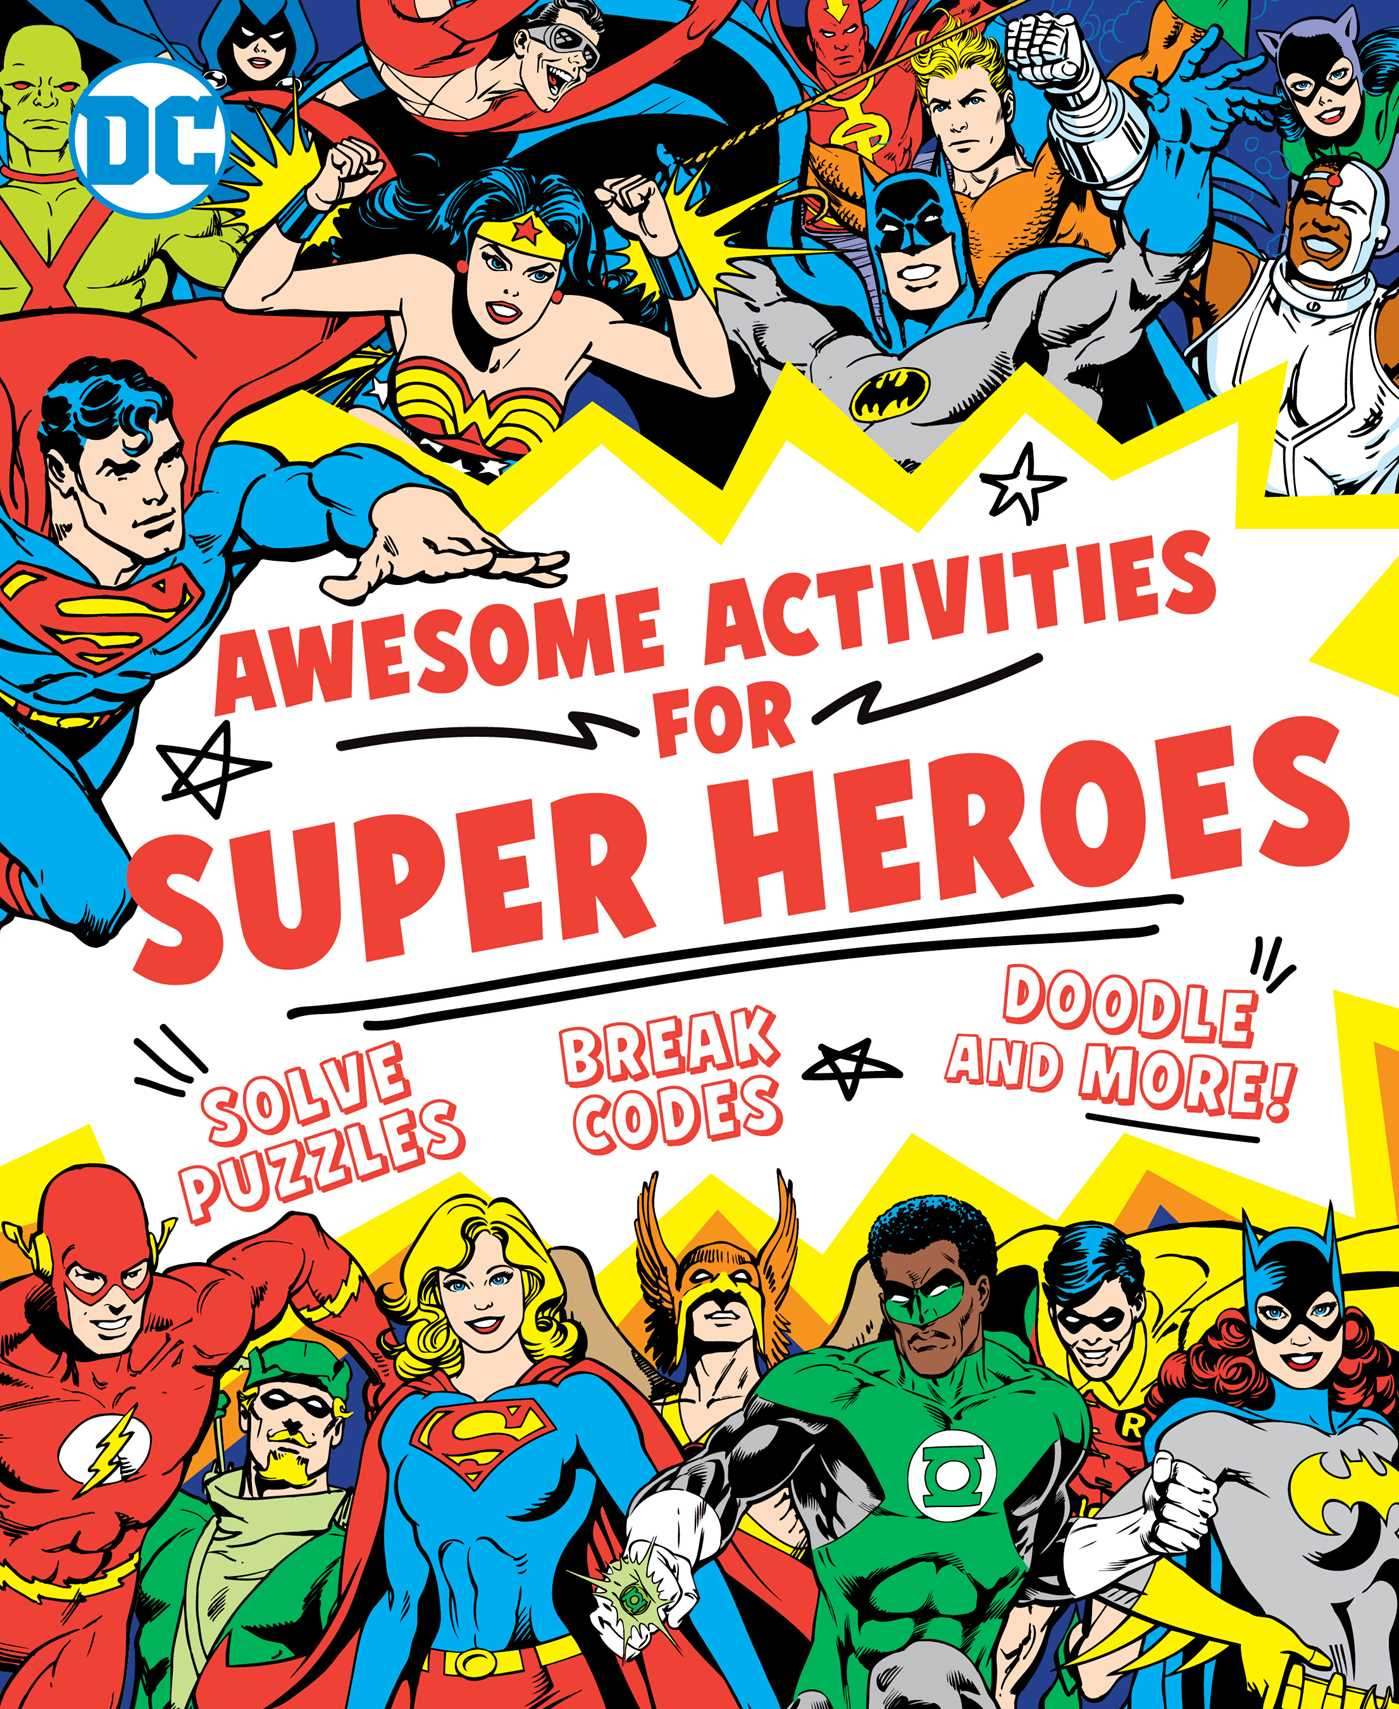 Awesome activities for super heroes 9781941367407 hr